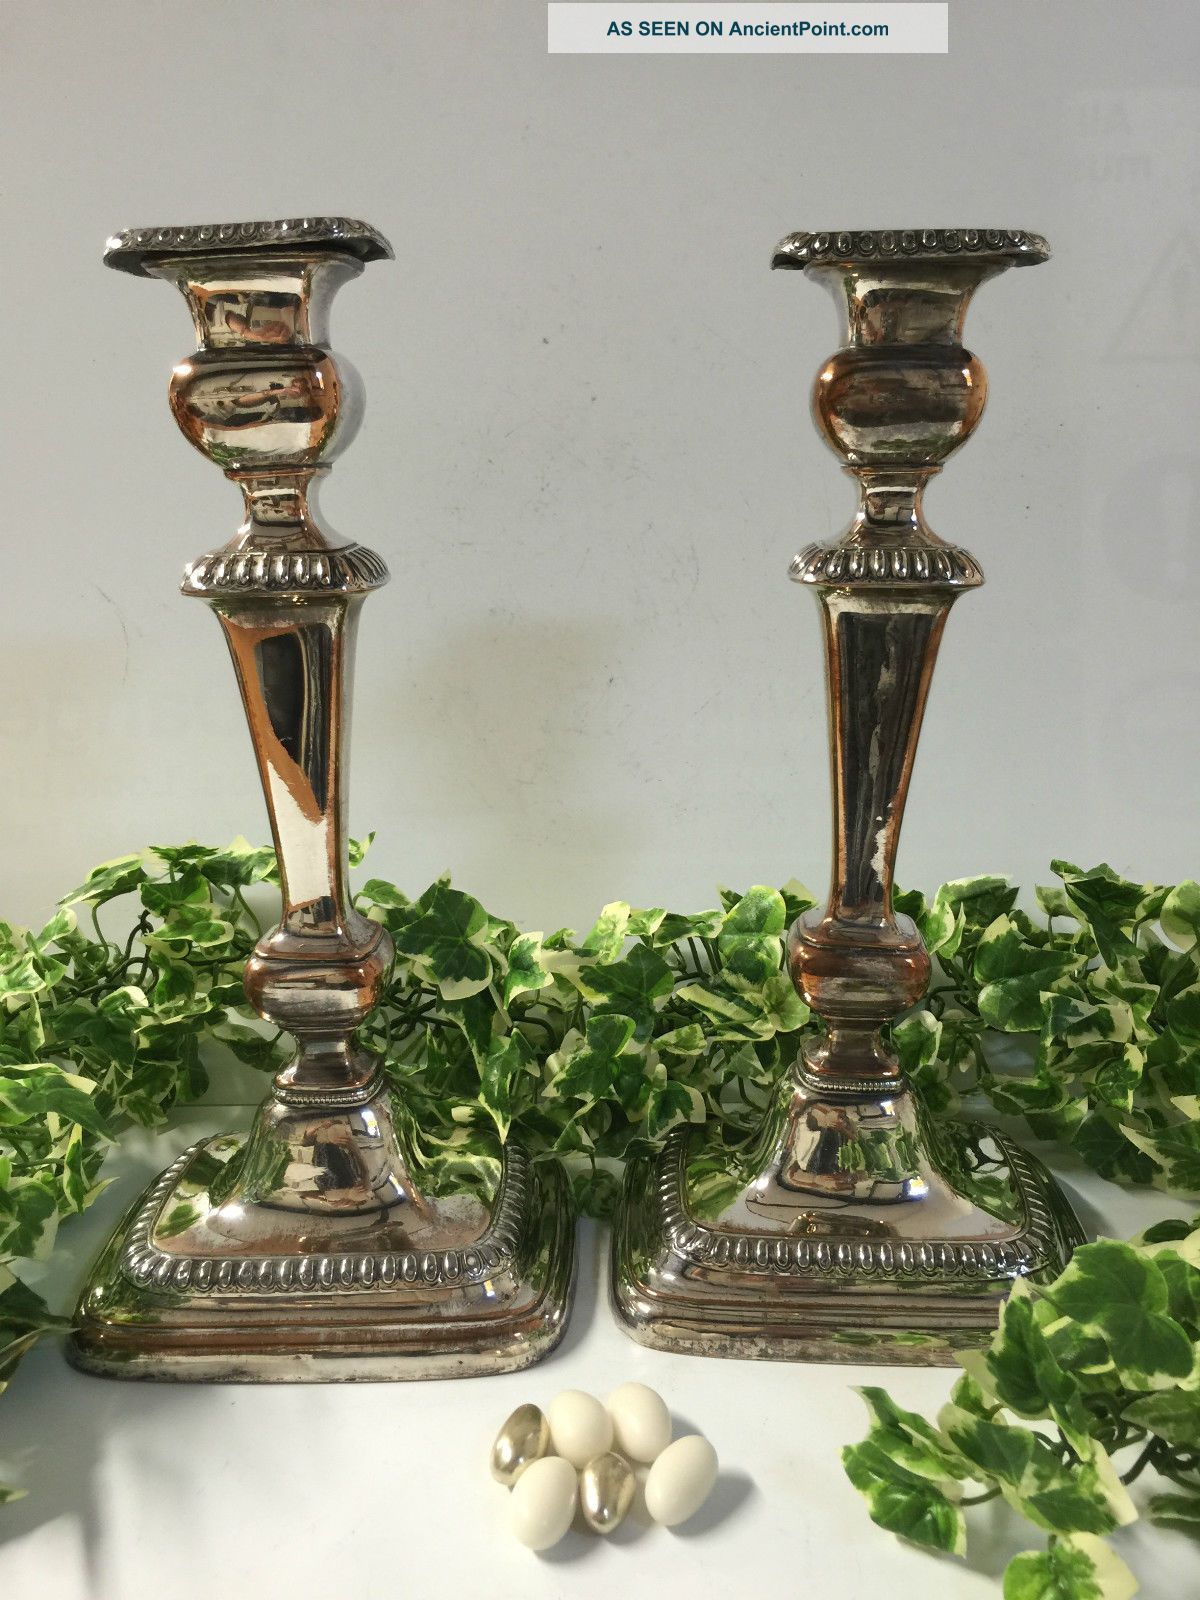 Silver Plated Candlesticks Circa 1900 Candlesticks & Candelabra photo